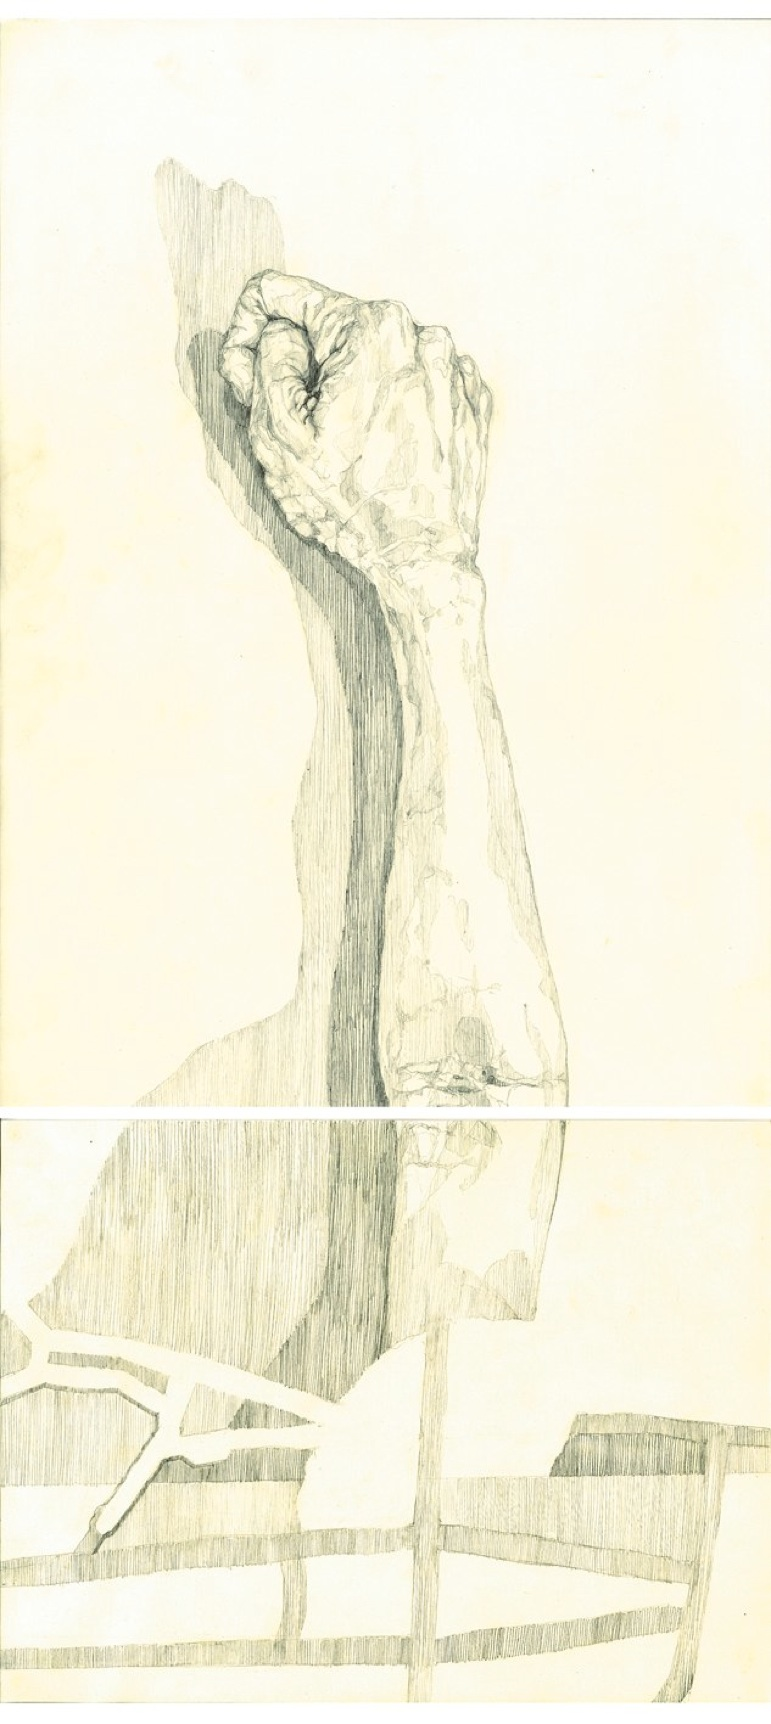 OCCLUSION (DIPTYCH) 2010  Mechanical pencil on paper, dimensions: 64*29.5 cm. Private collection